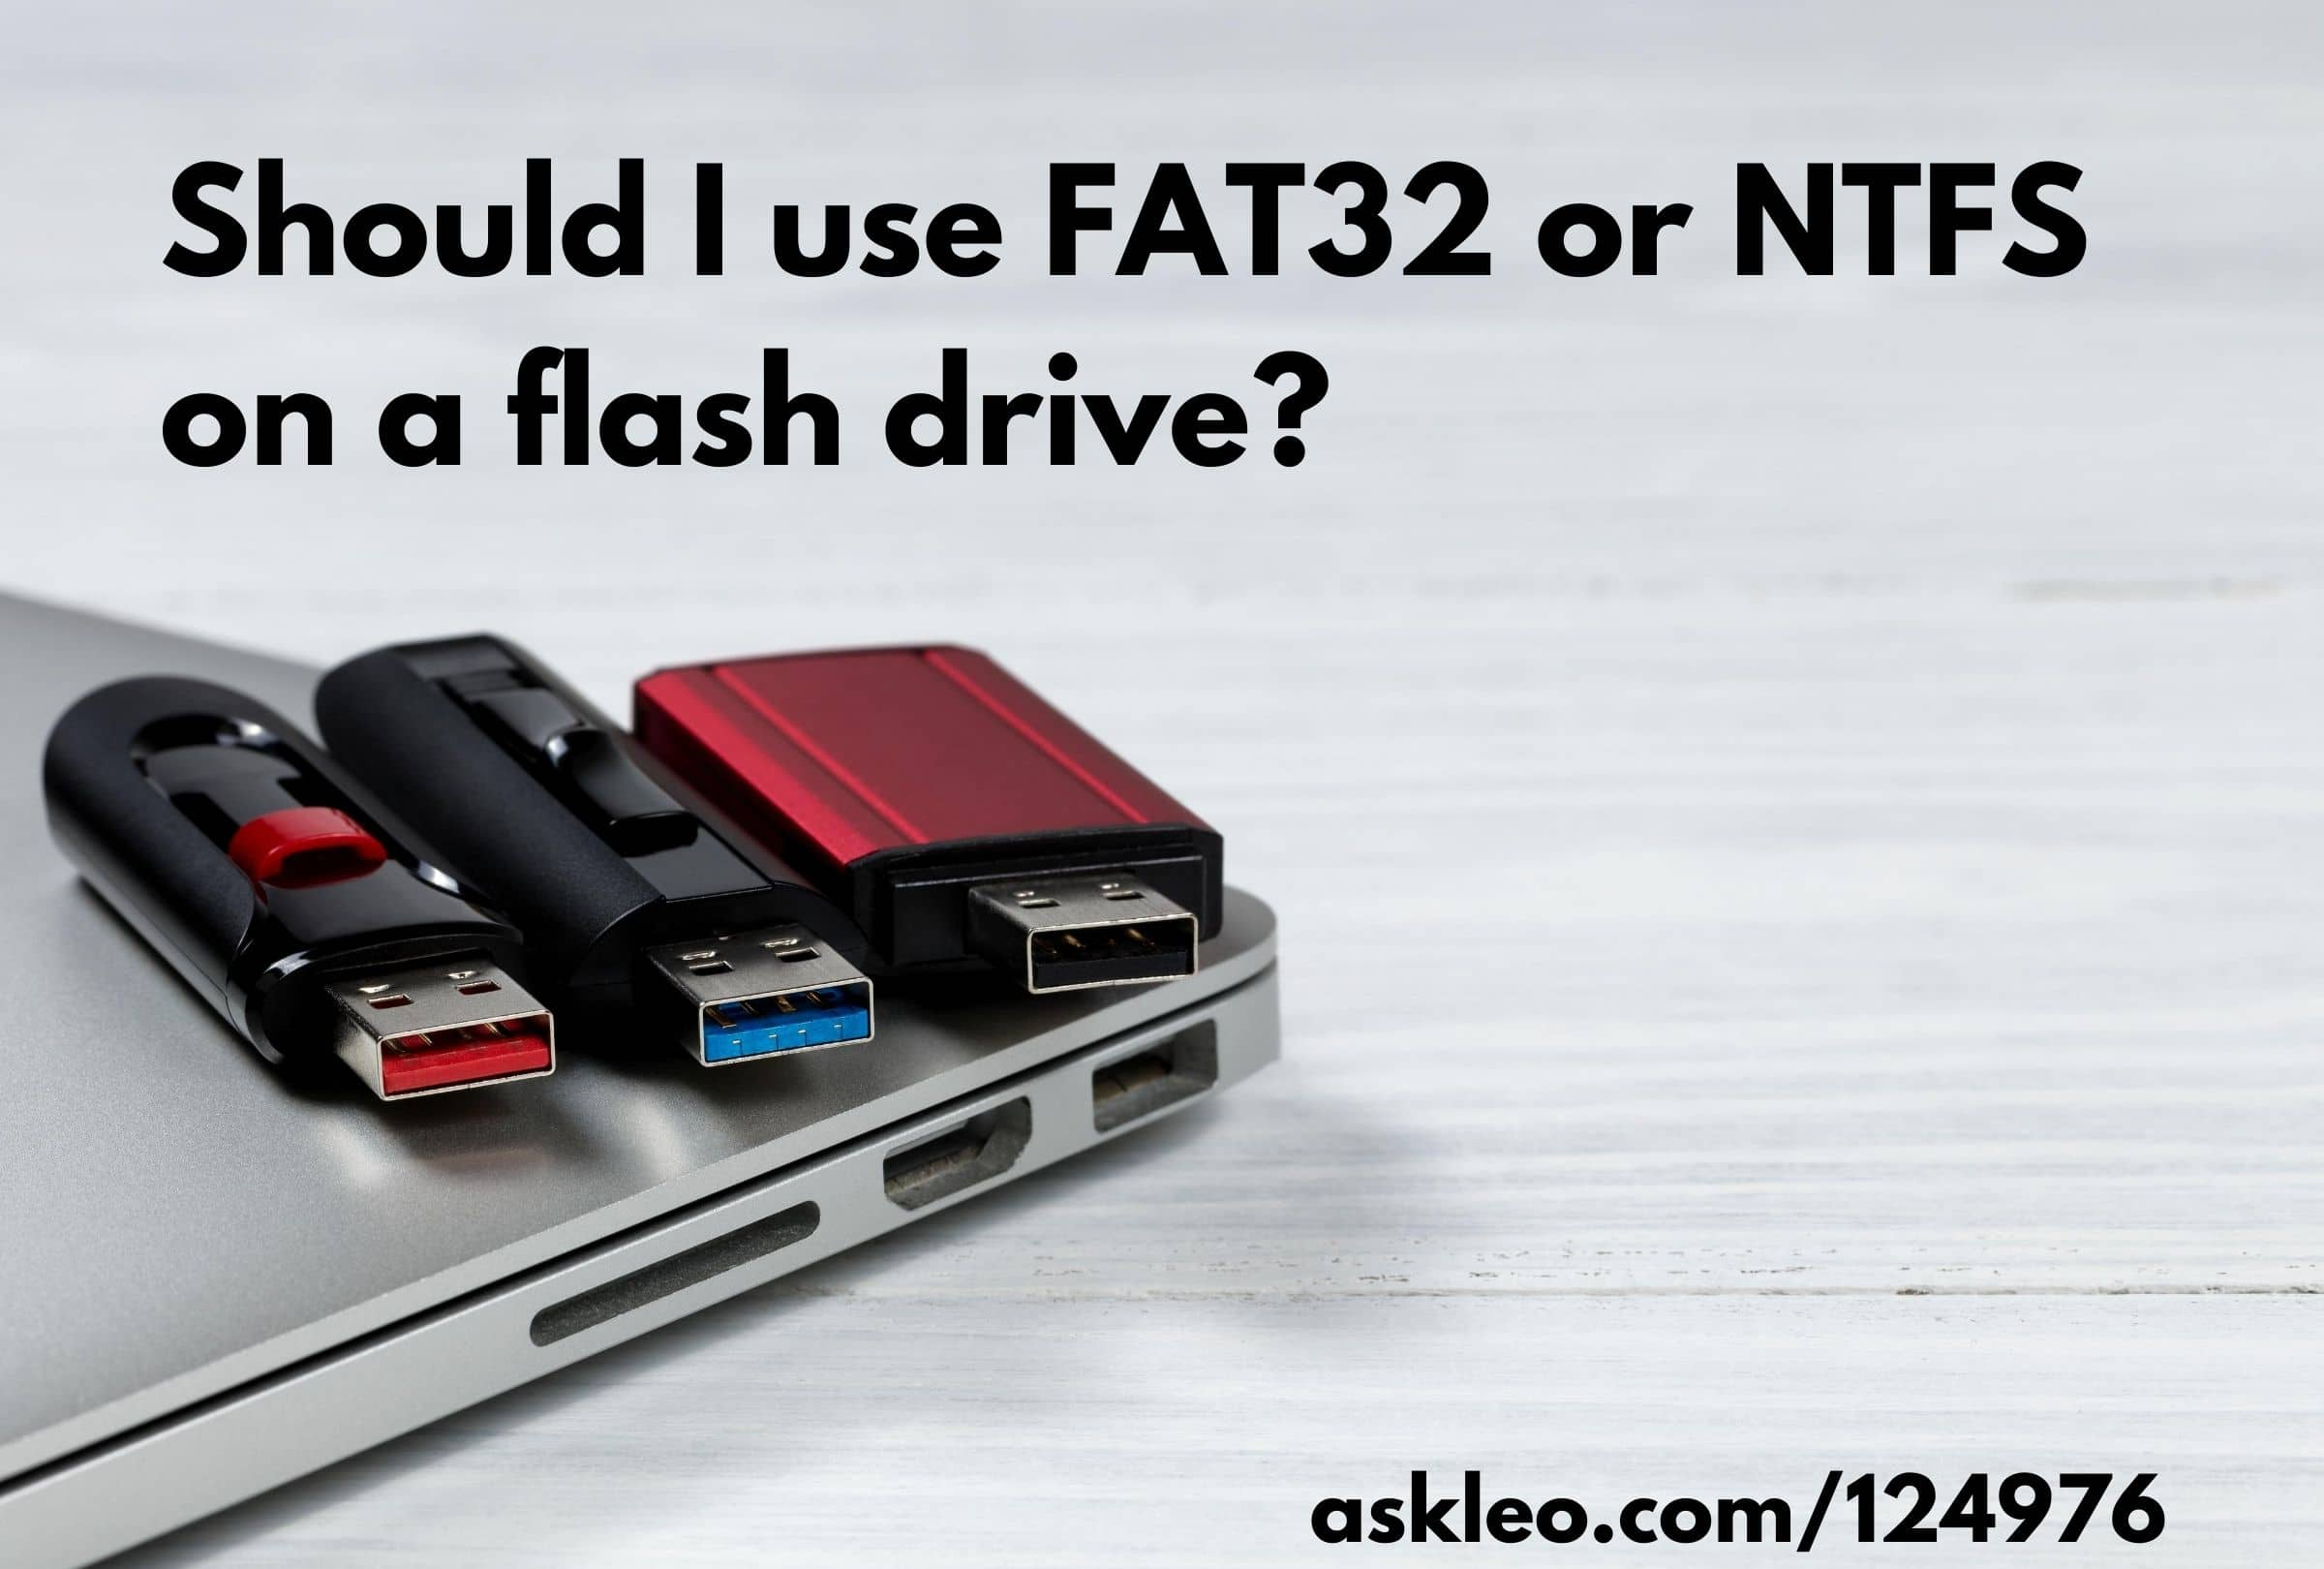 Should I Use FAT32 or NTFS on a Flash Drive?